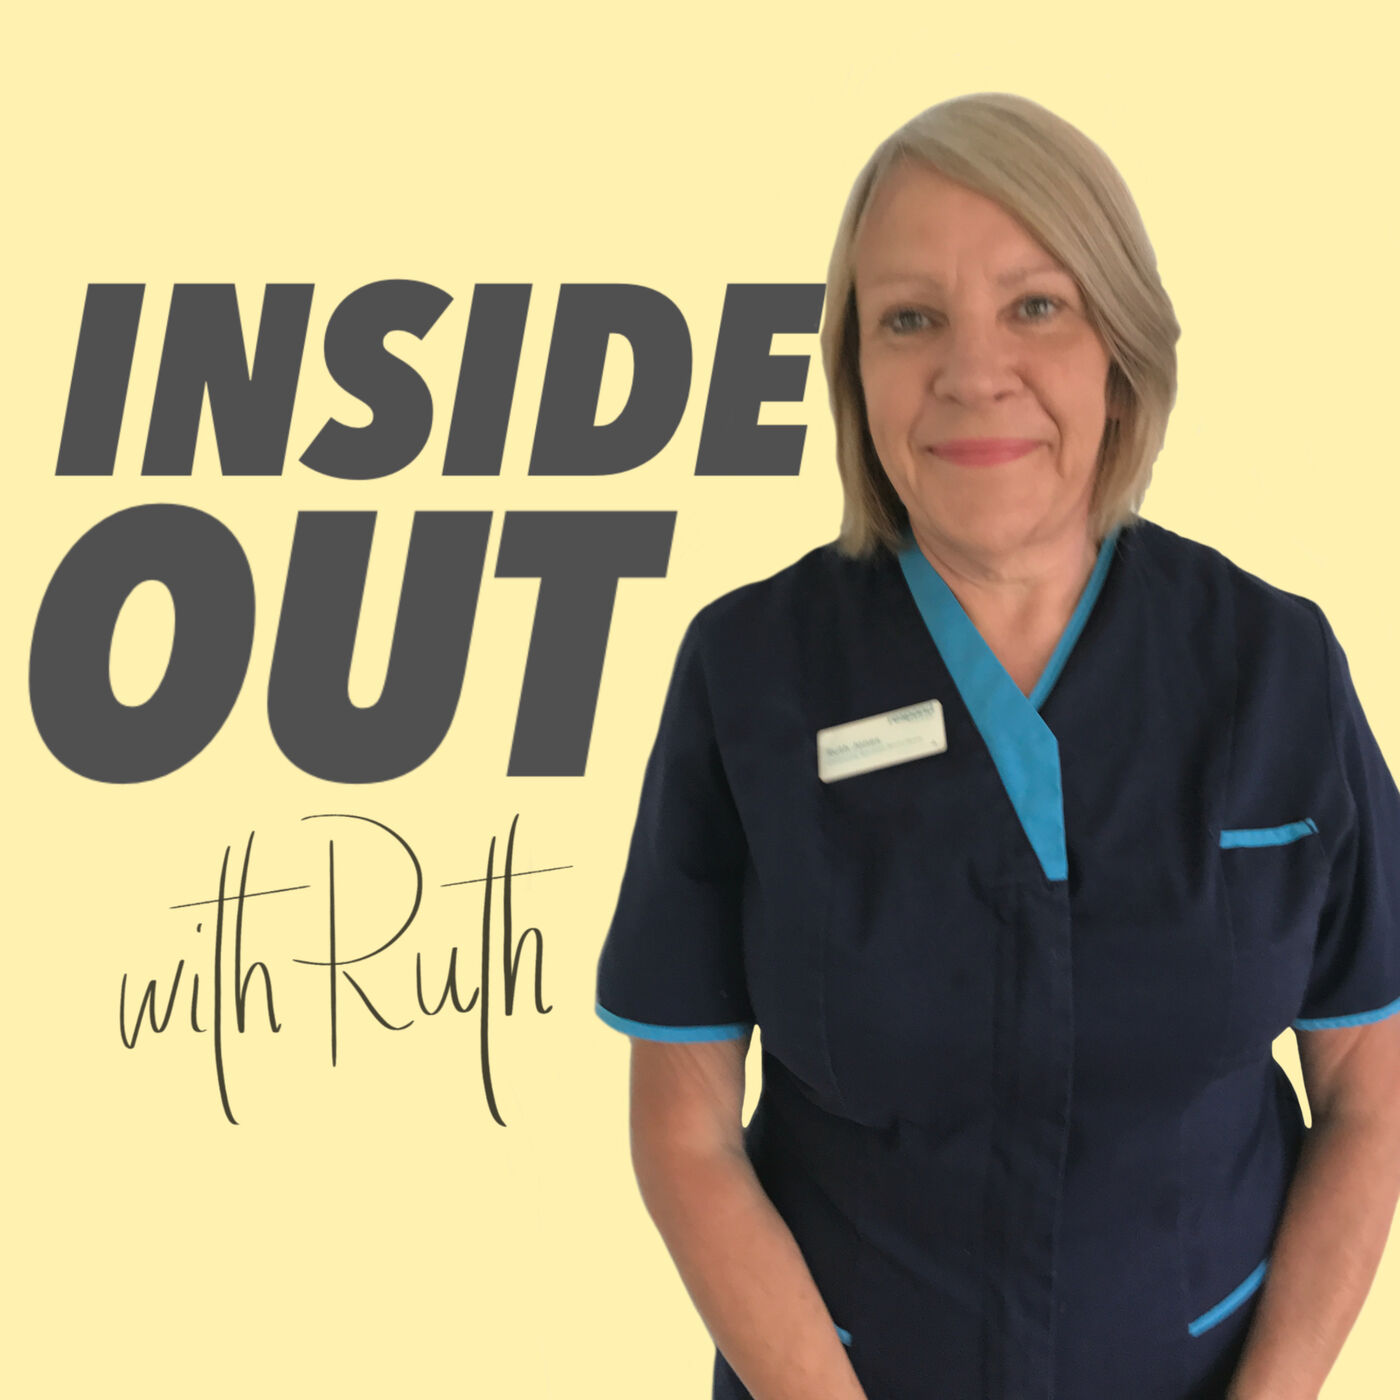 Inside Out with Ruth; A Stoma Care Nurse